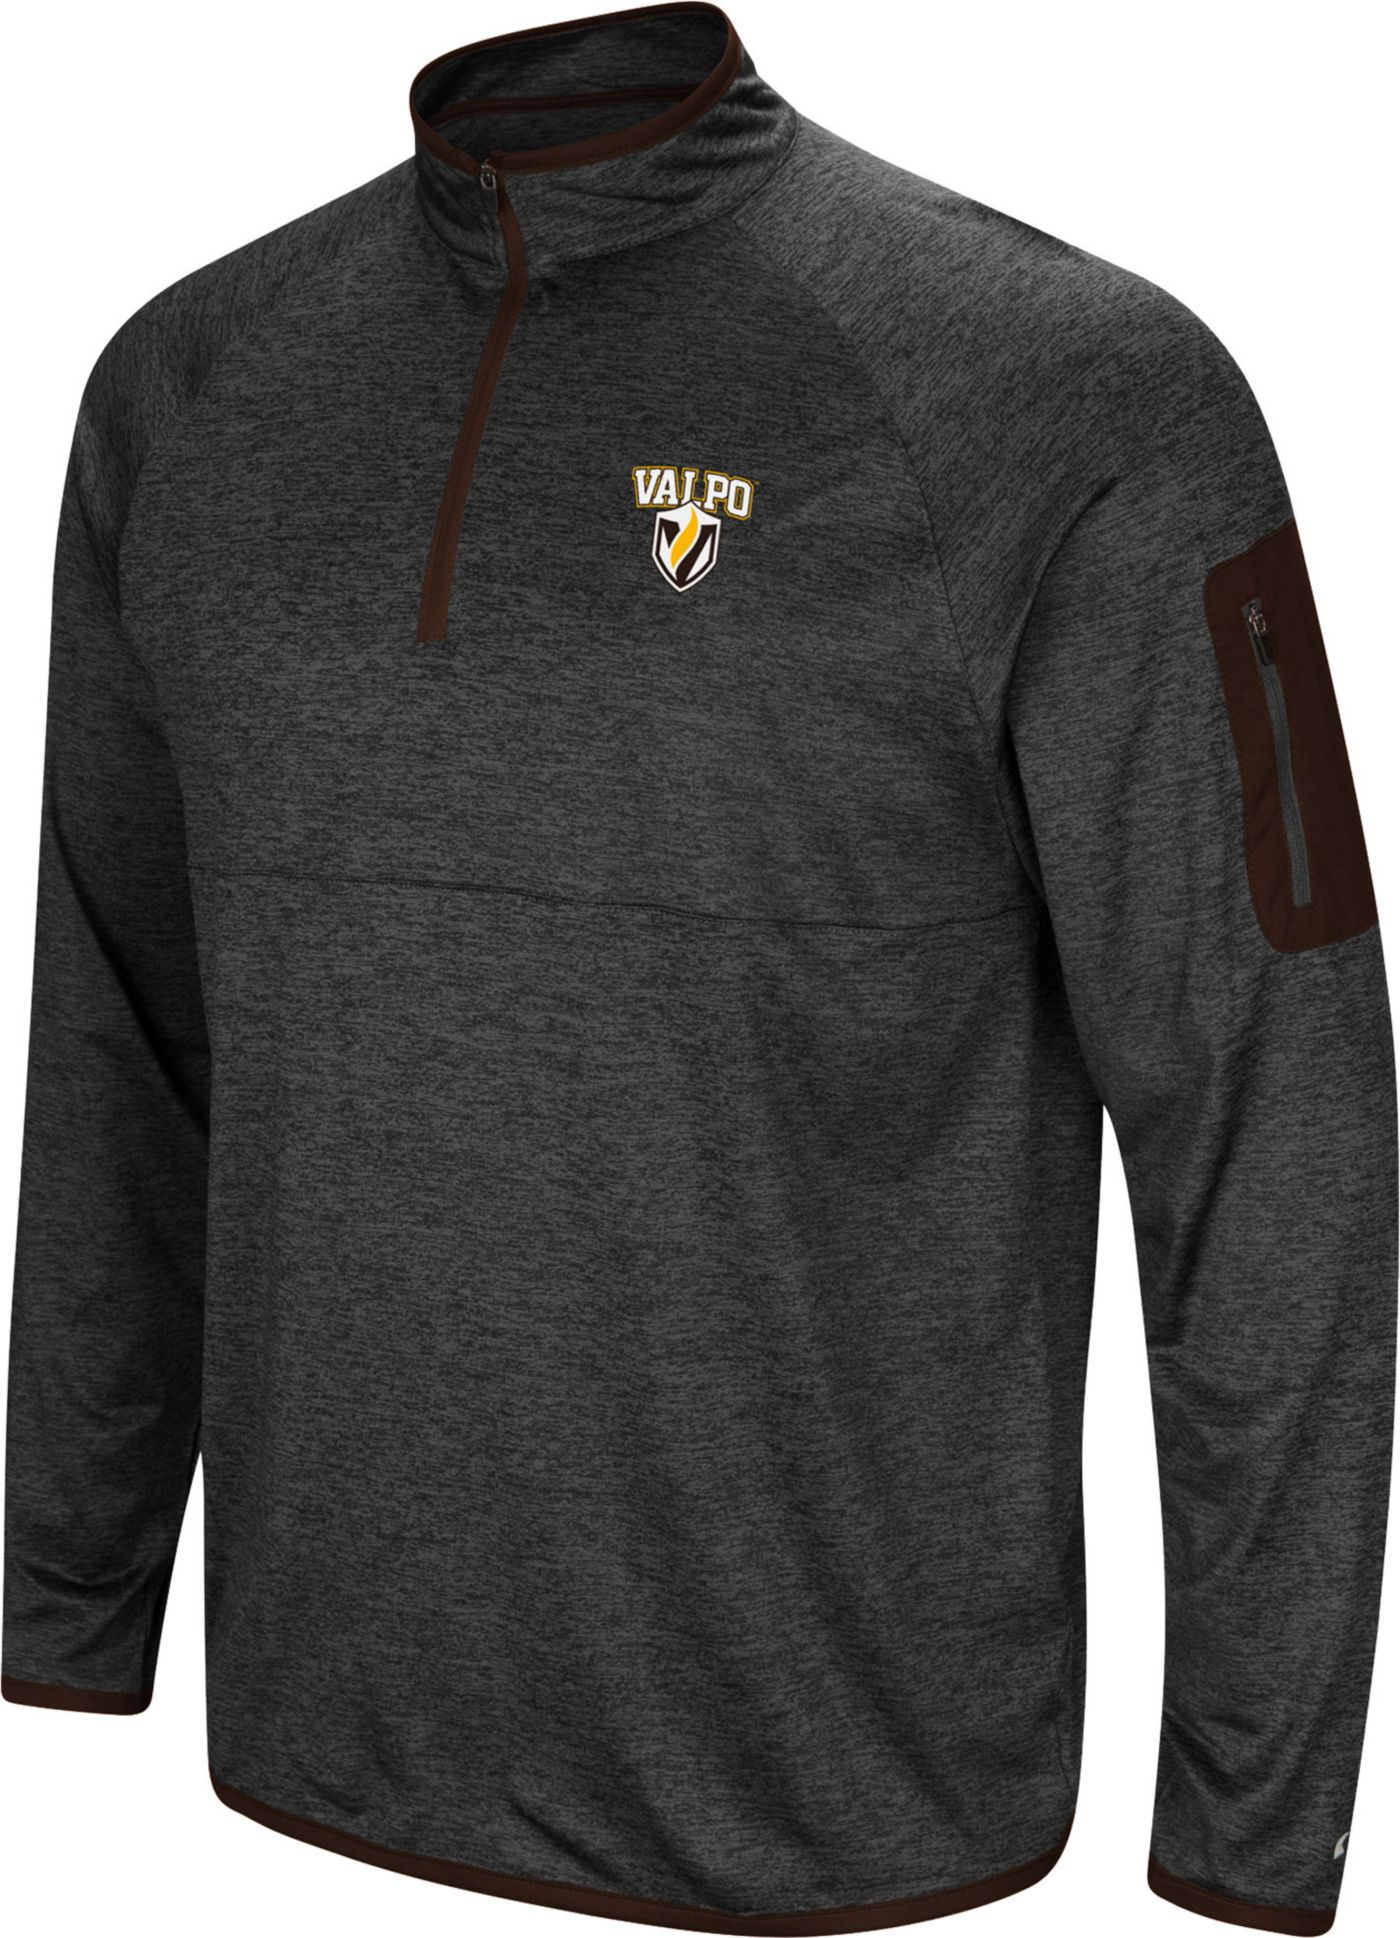 Colosseum Men's Valparaiso Crusaders Indus River Quarter-Zip Black Shirt